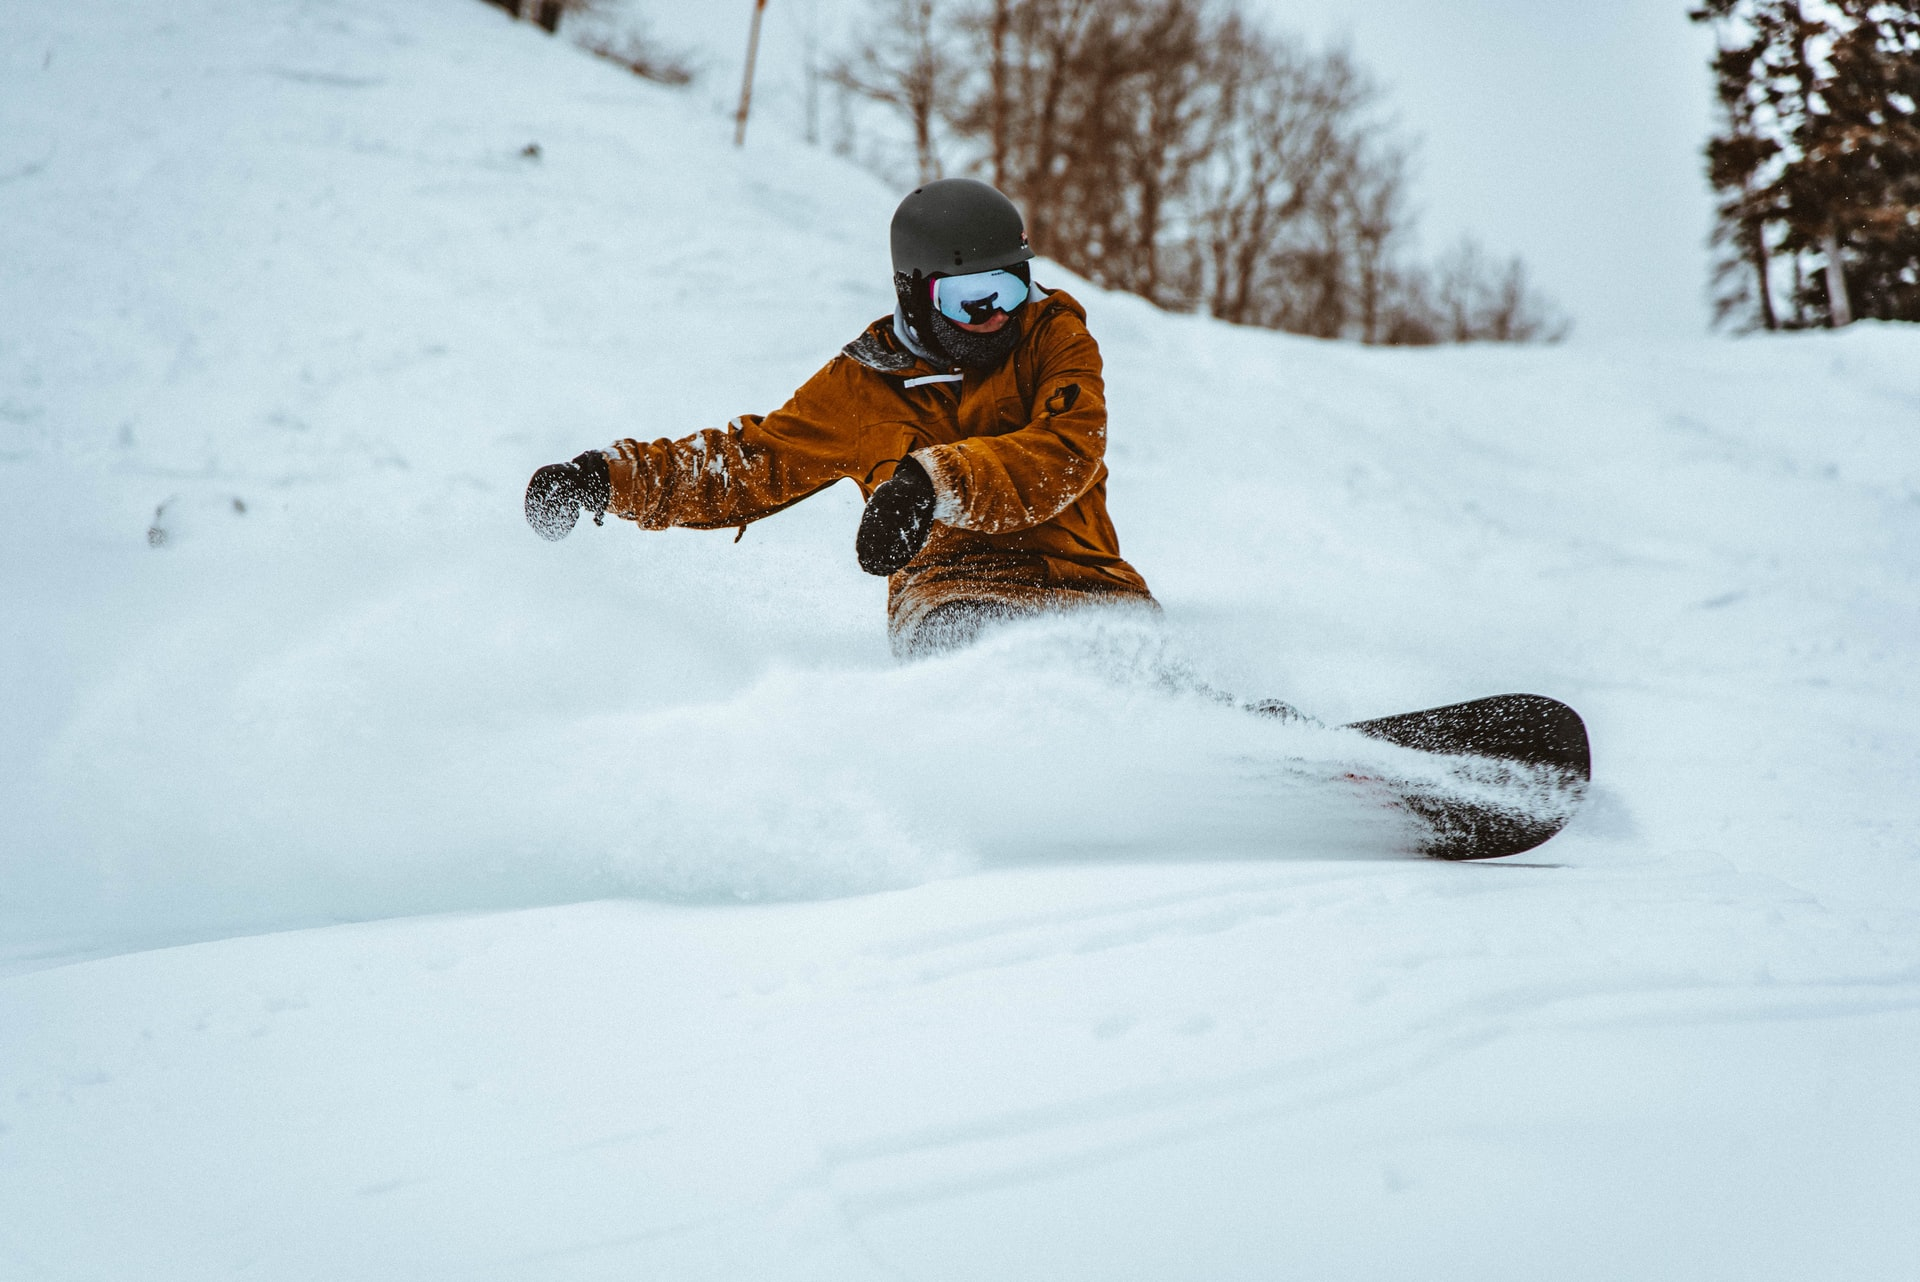 Creative Ways to Entertain Yourself After Snowboarding